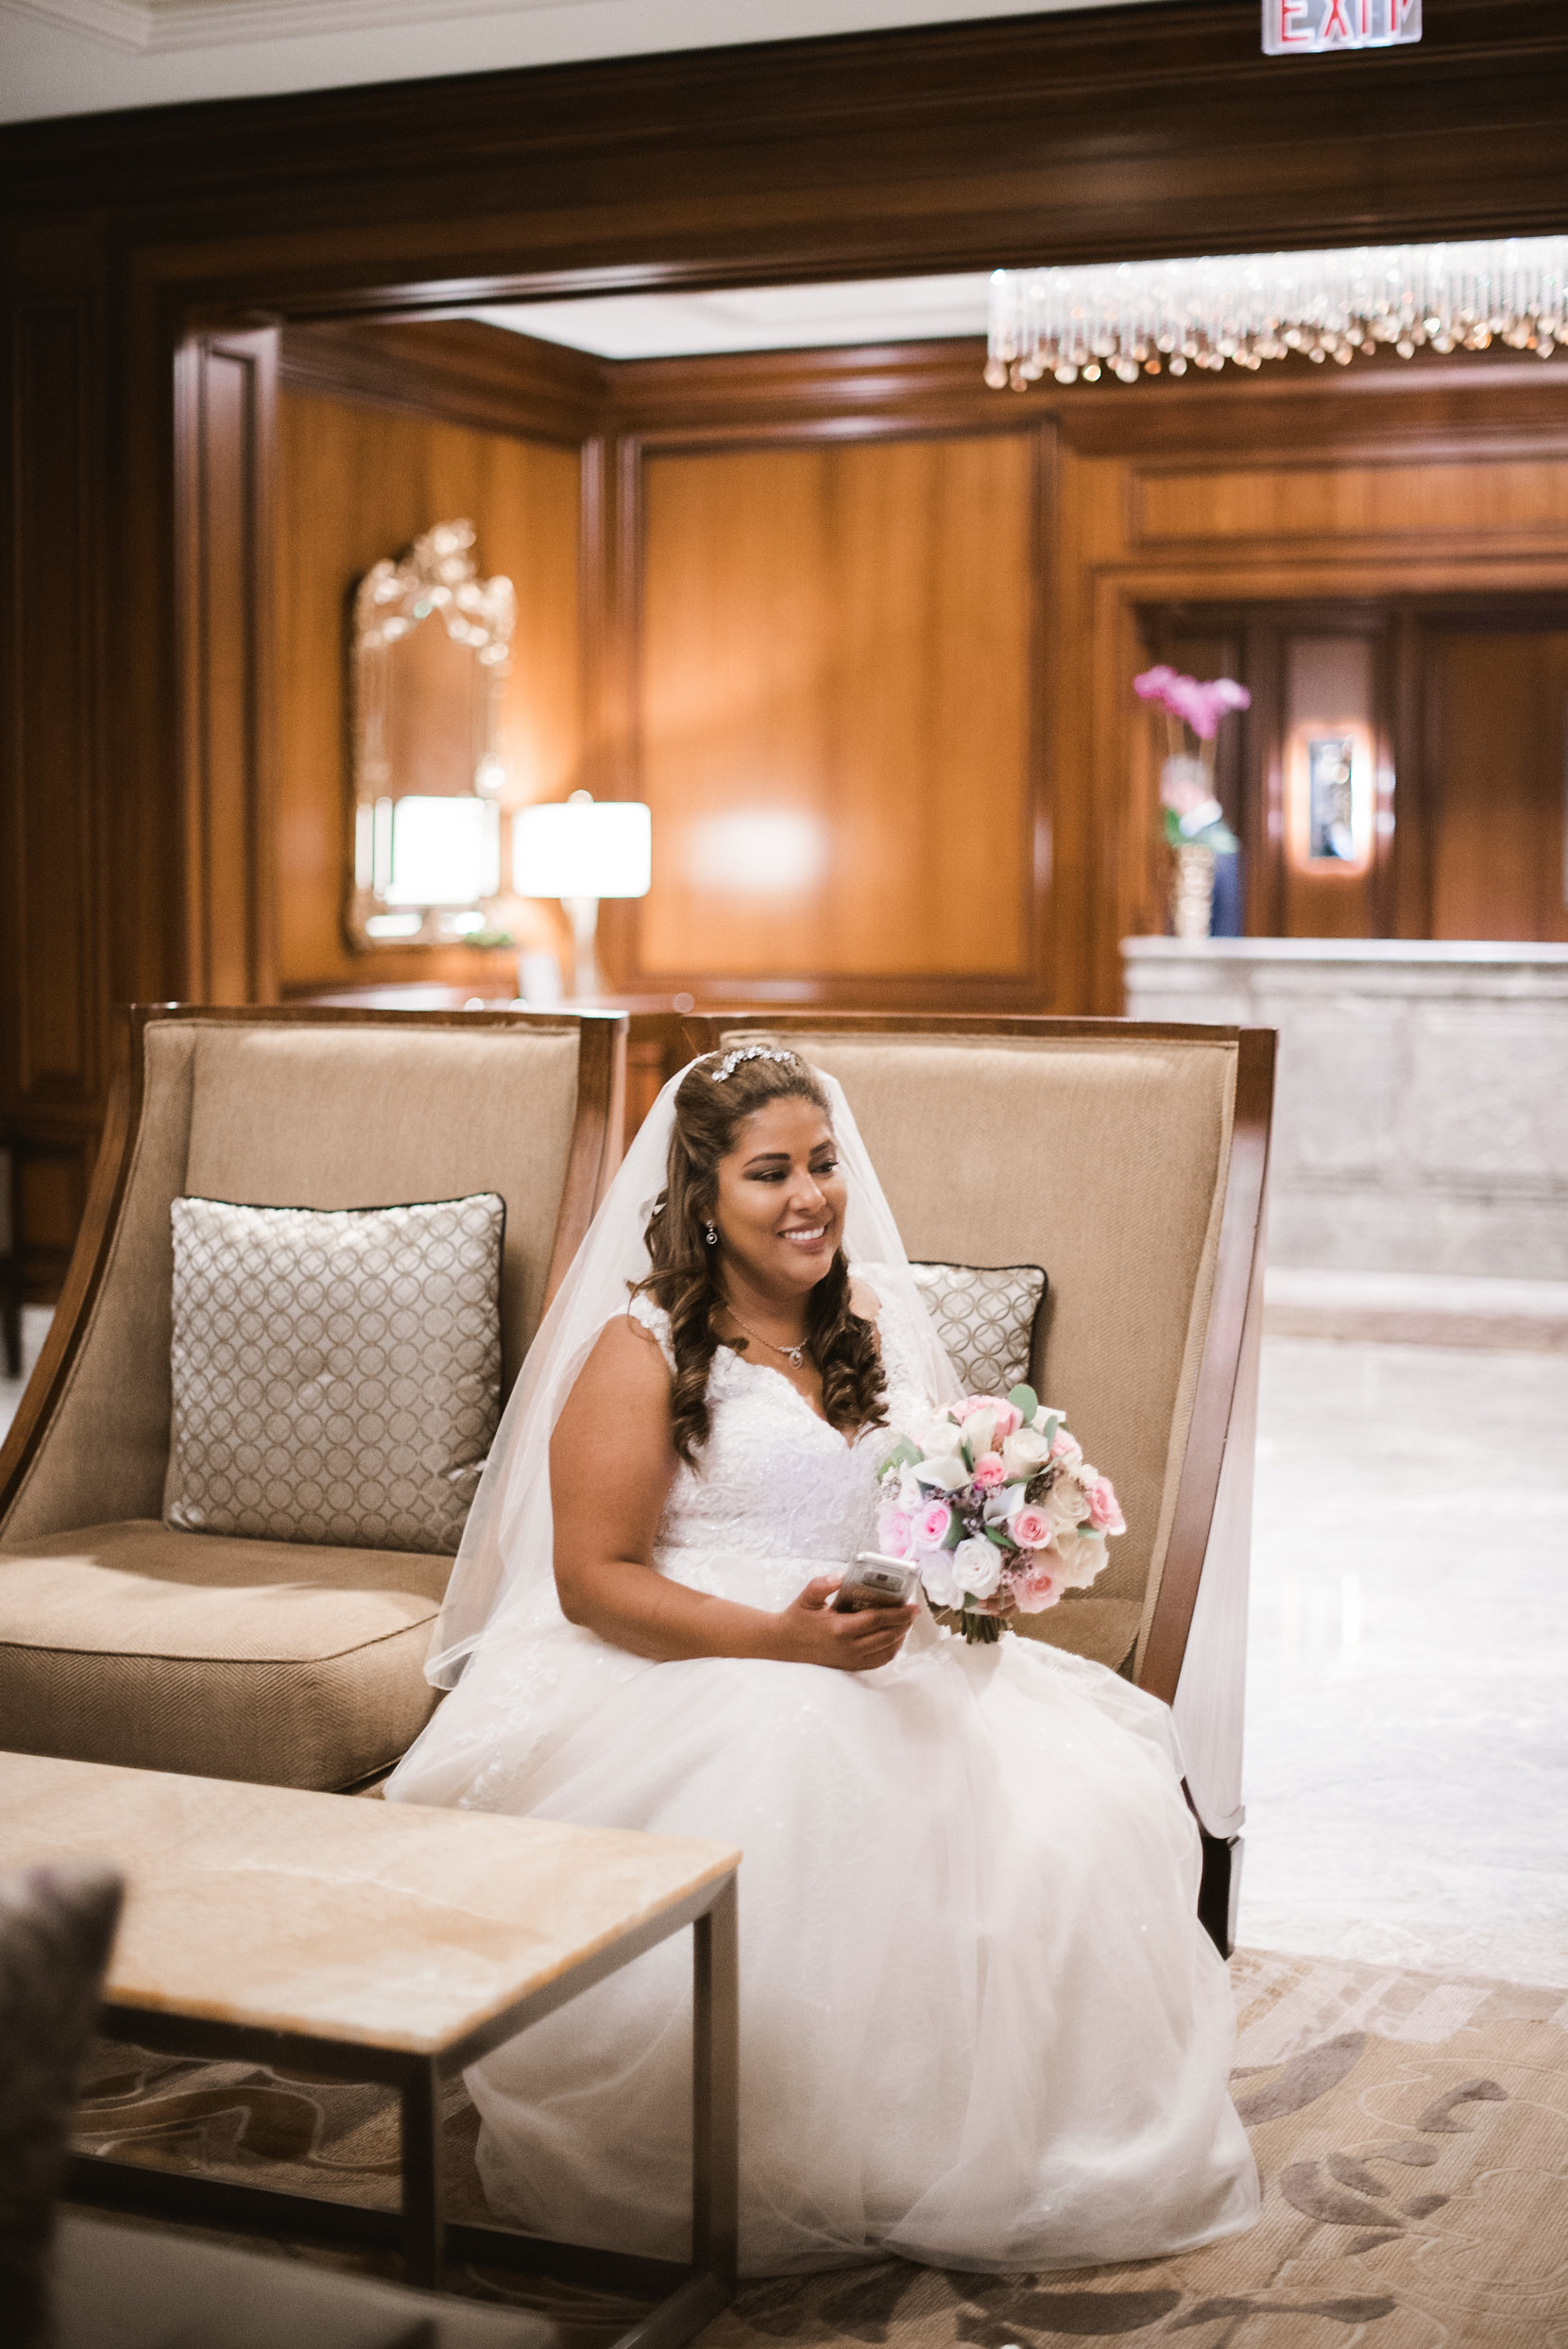 Bride sitting on couch in hotel